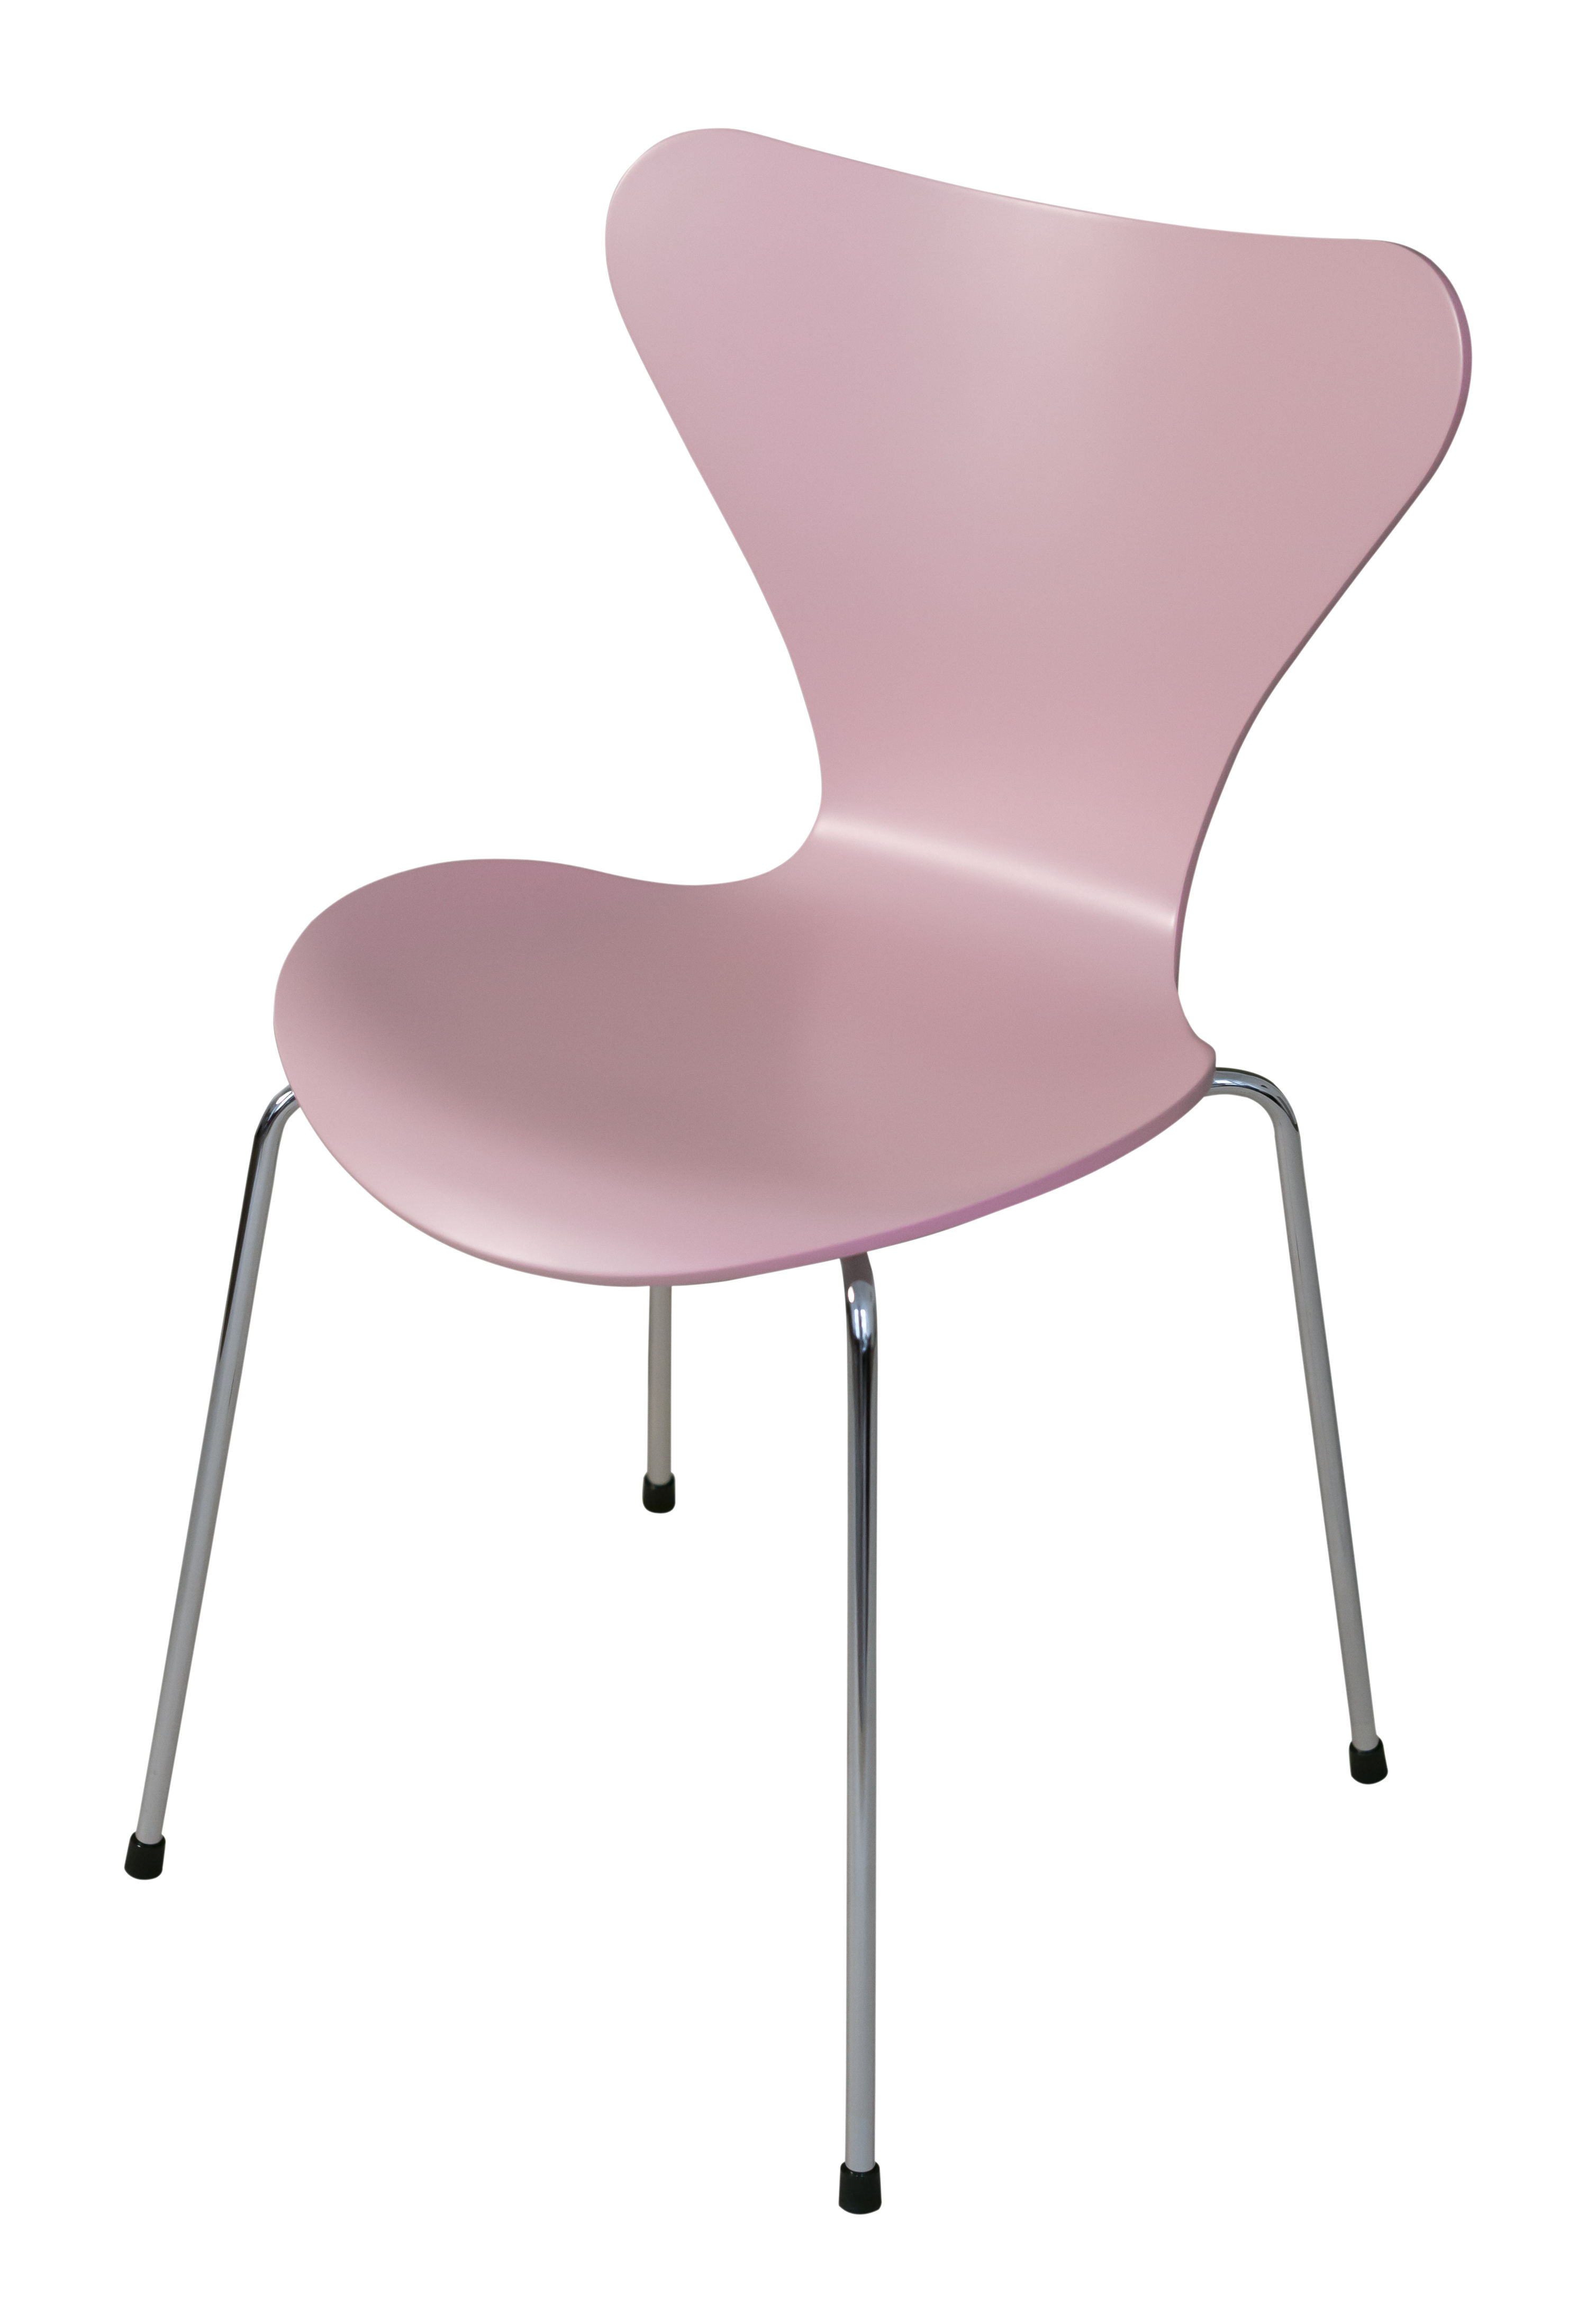 Furniture - Chairs - Série 7 Stacking chair - / Lacquered wood - 20 years of MID limited edition by Fritz Hansen - Pantone P510c pink / Chromed legs - Lacquered plywood, Steel